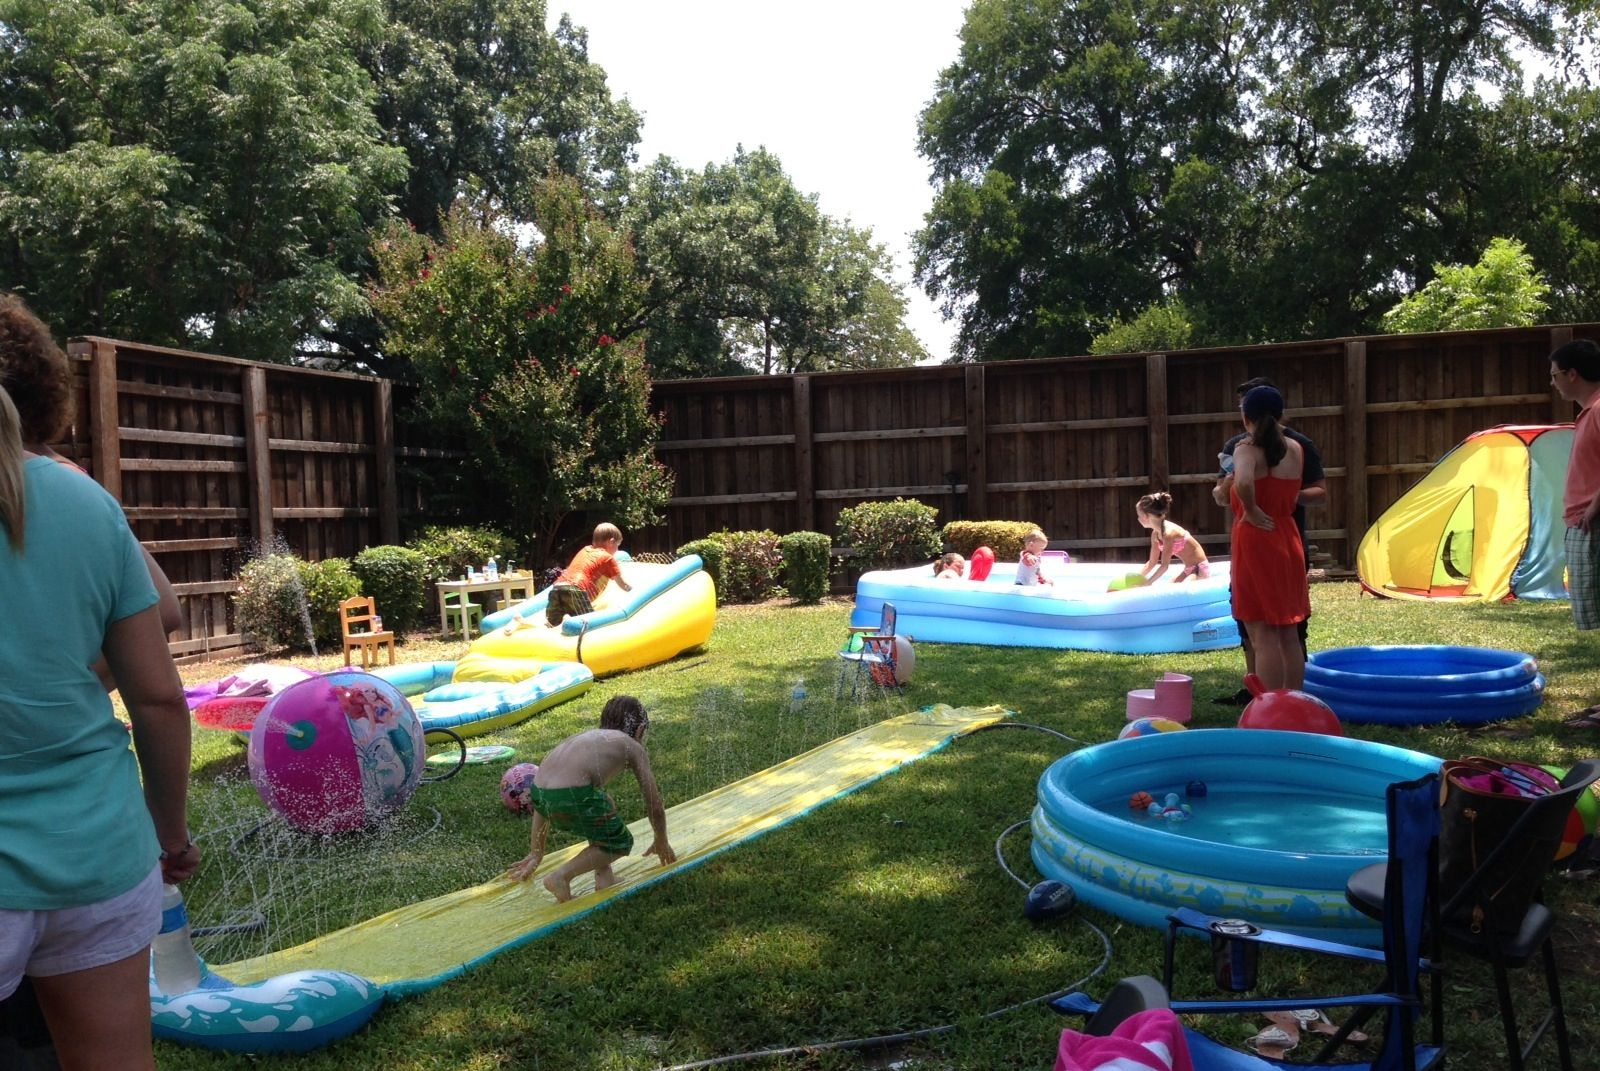 Backyard set up future birthday party ideas pinterest for Garden pool party ideas